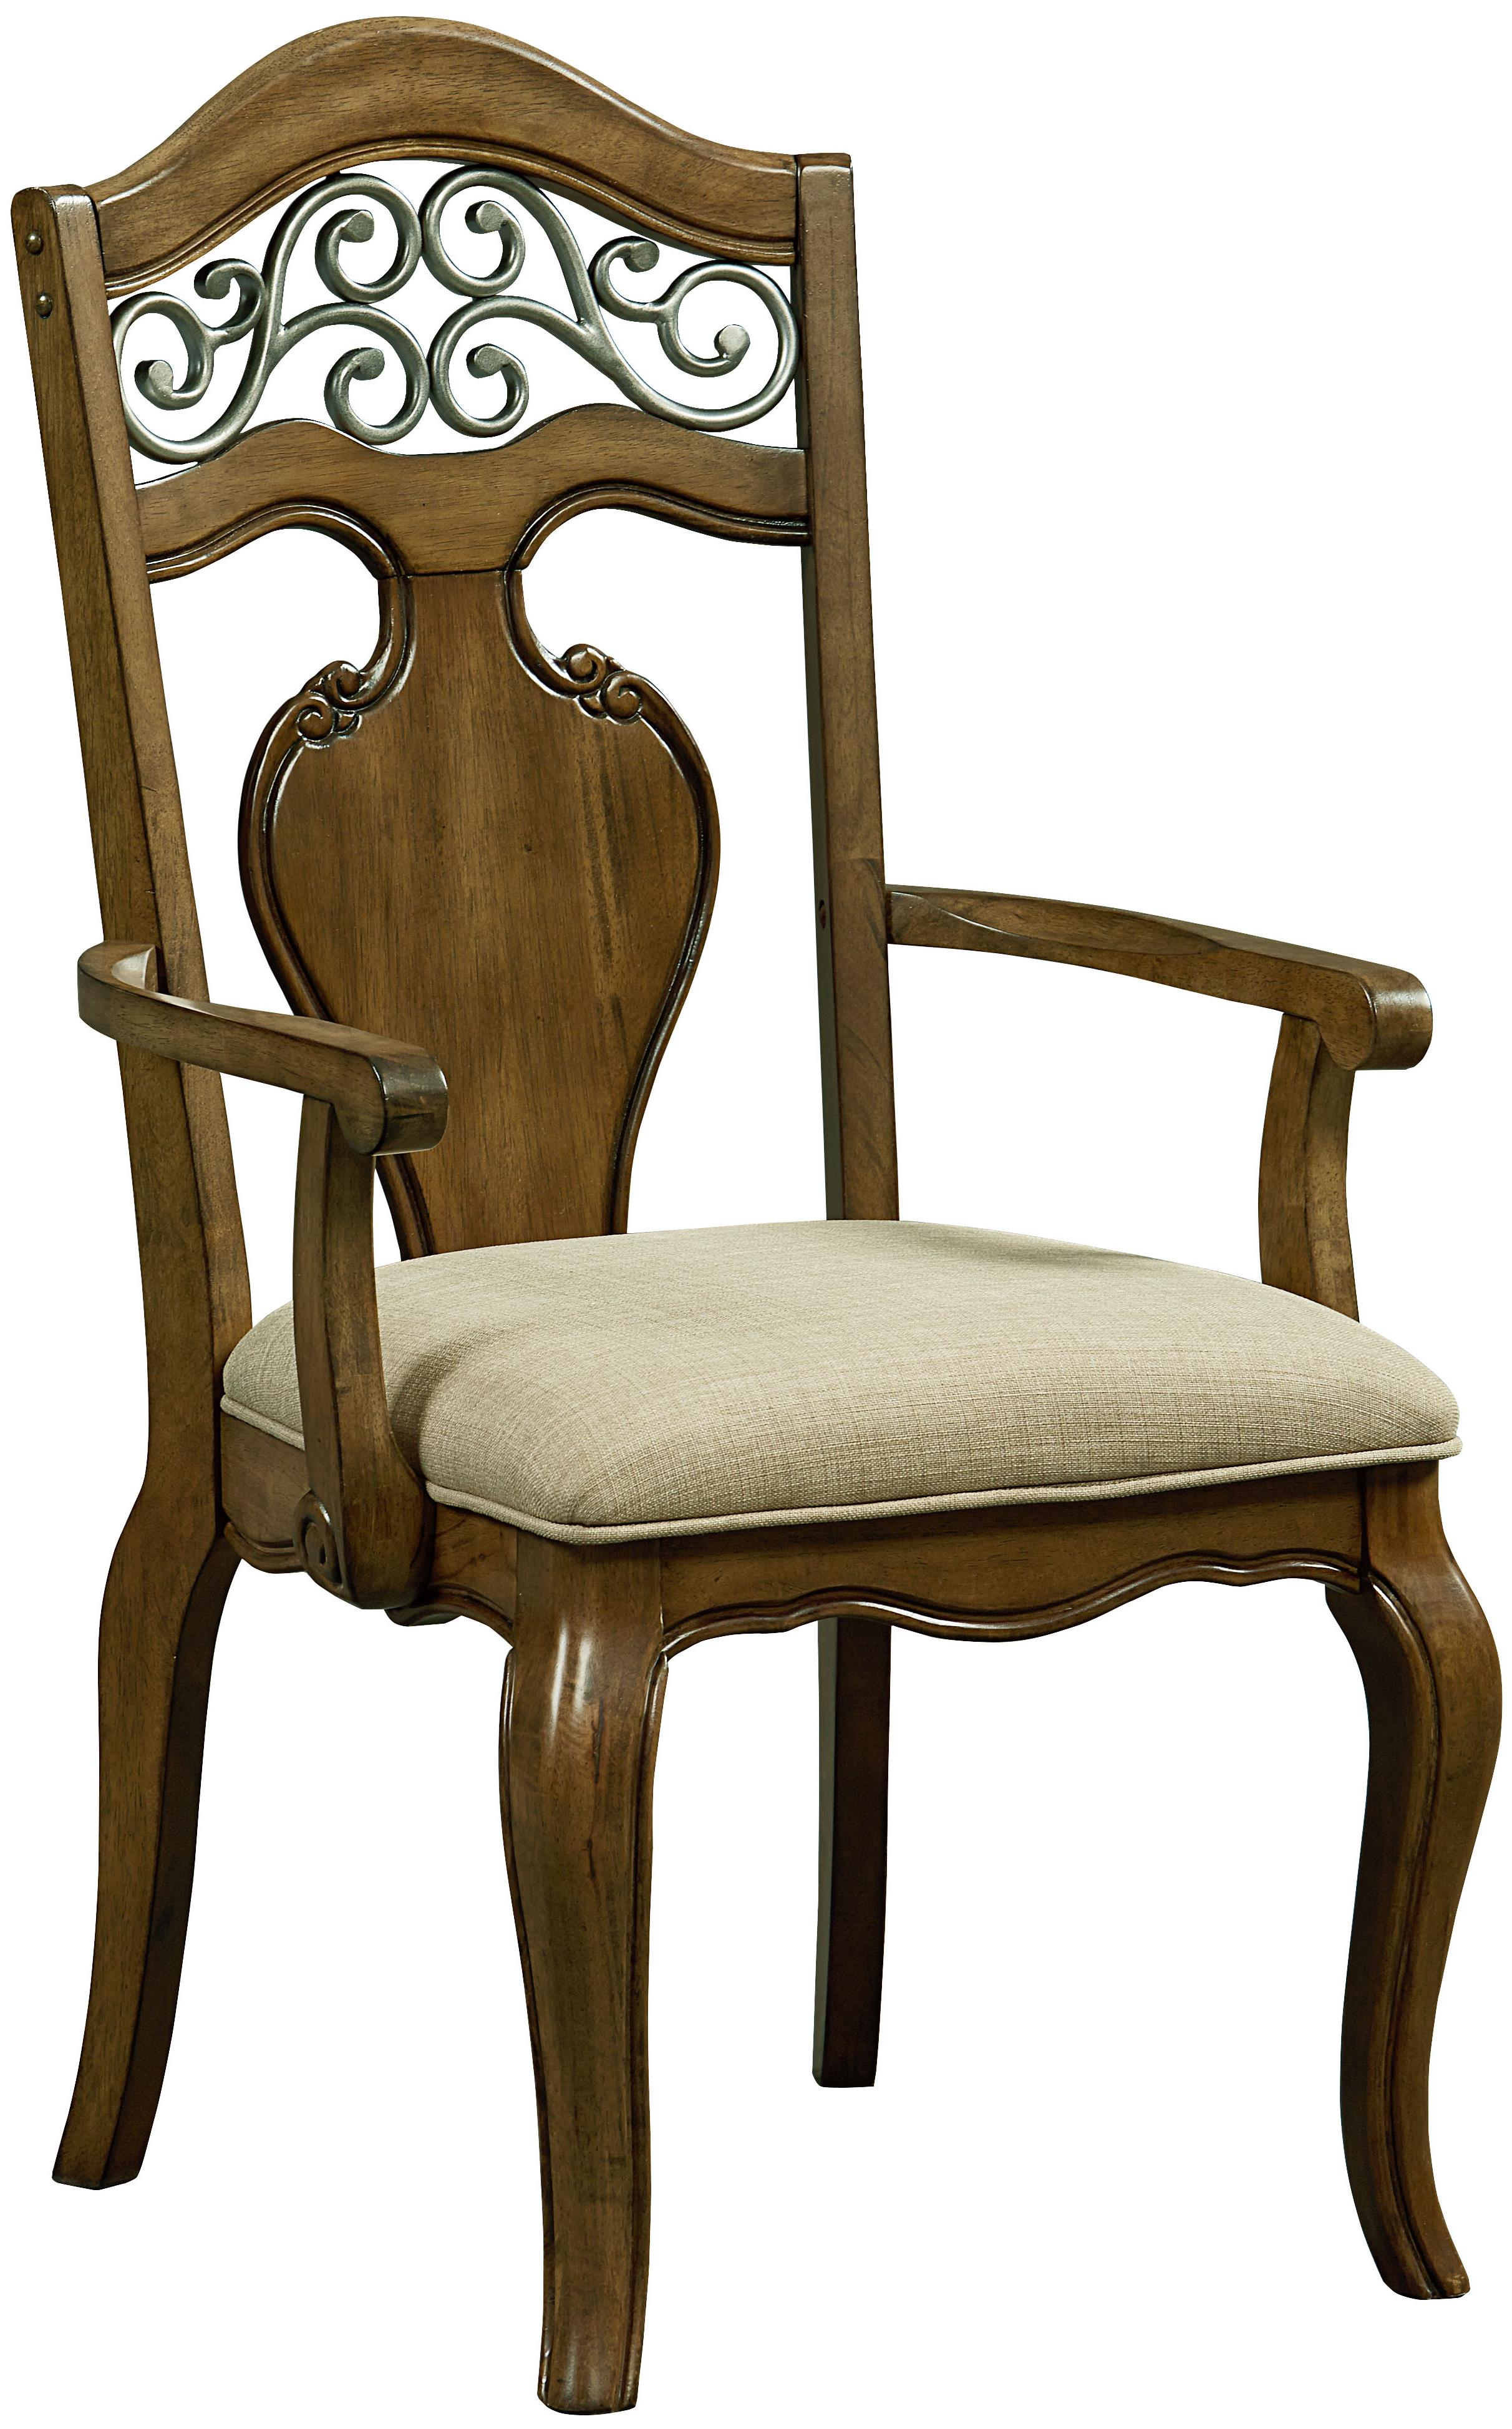 Standard Furniture Monterey Arm Chair 2/CTN                 - Item Number: 14365